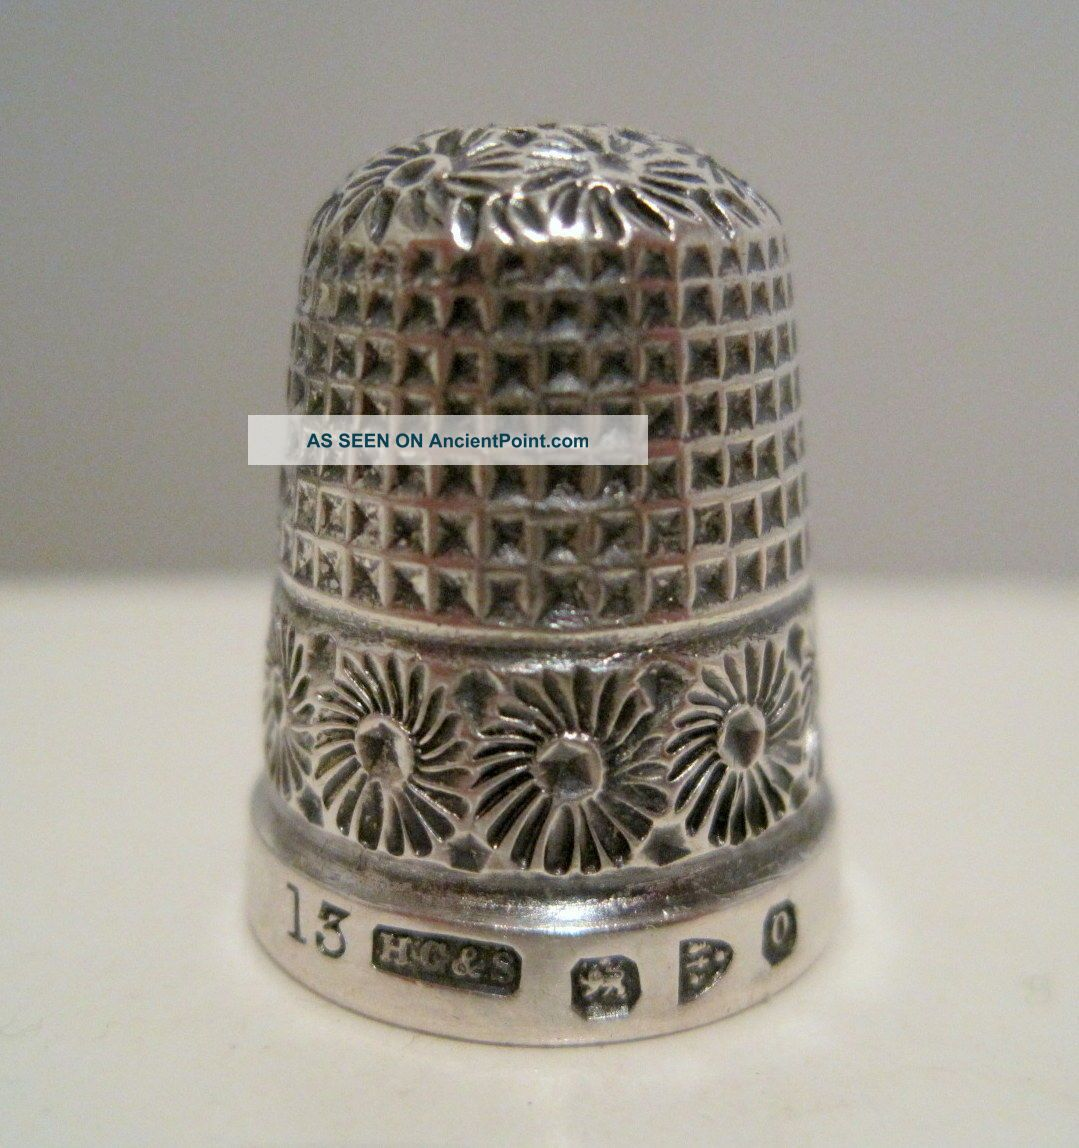 Fancy Henry Griffith 13 Antique Sterling Silver Thimble Hallmarked Chester 1897 Thimbles photo